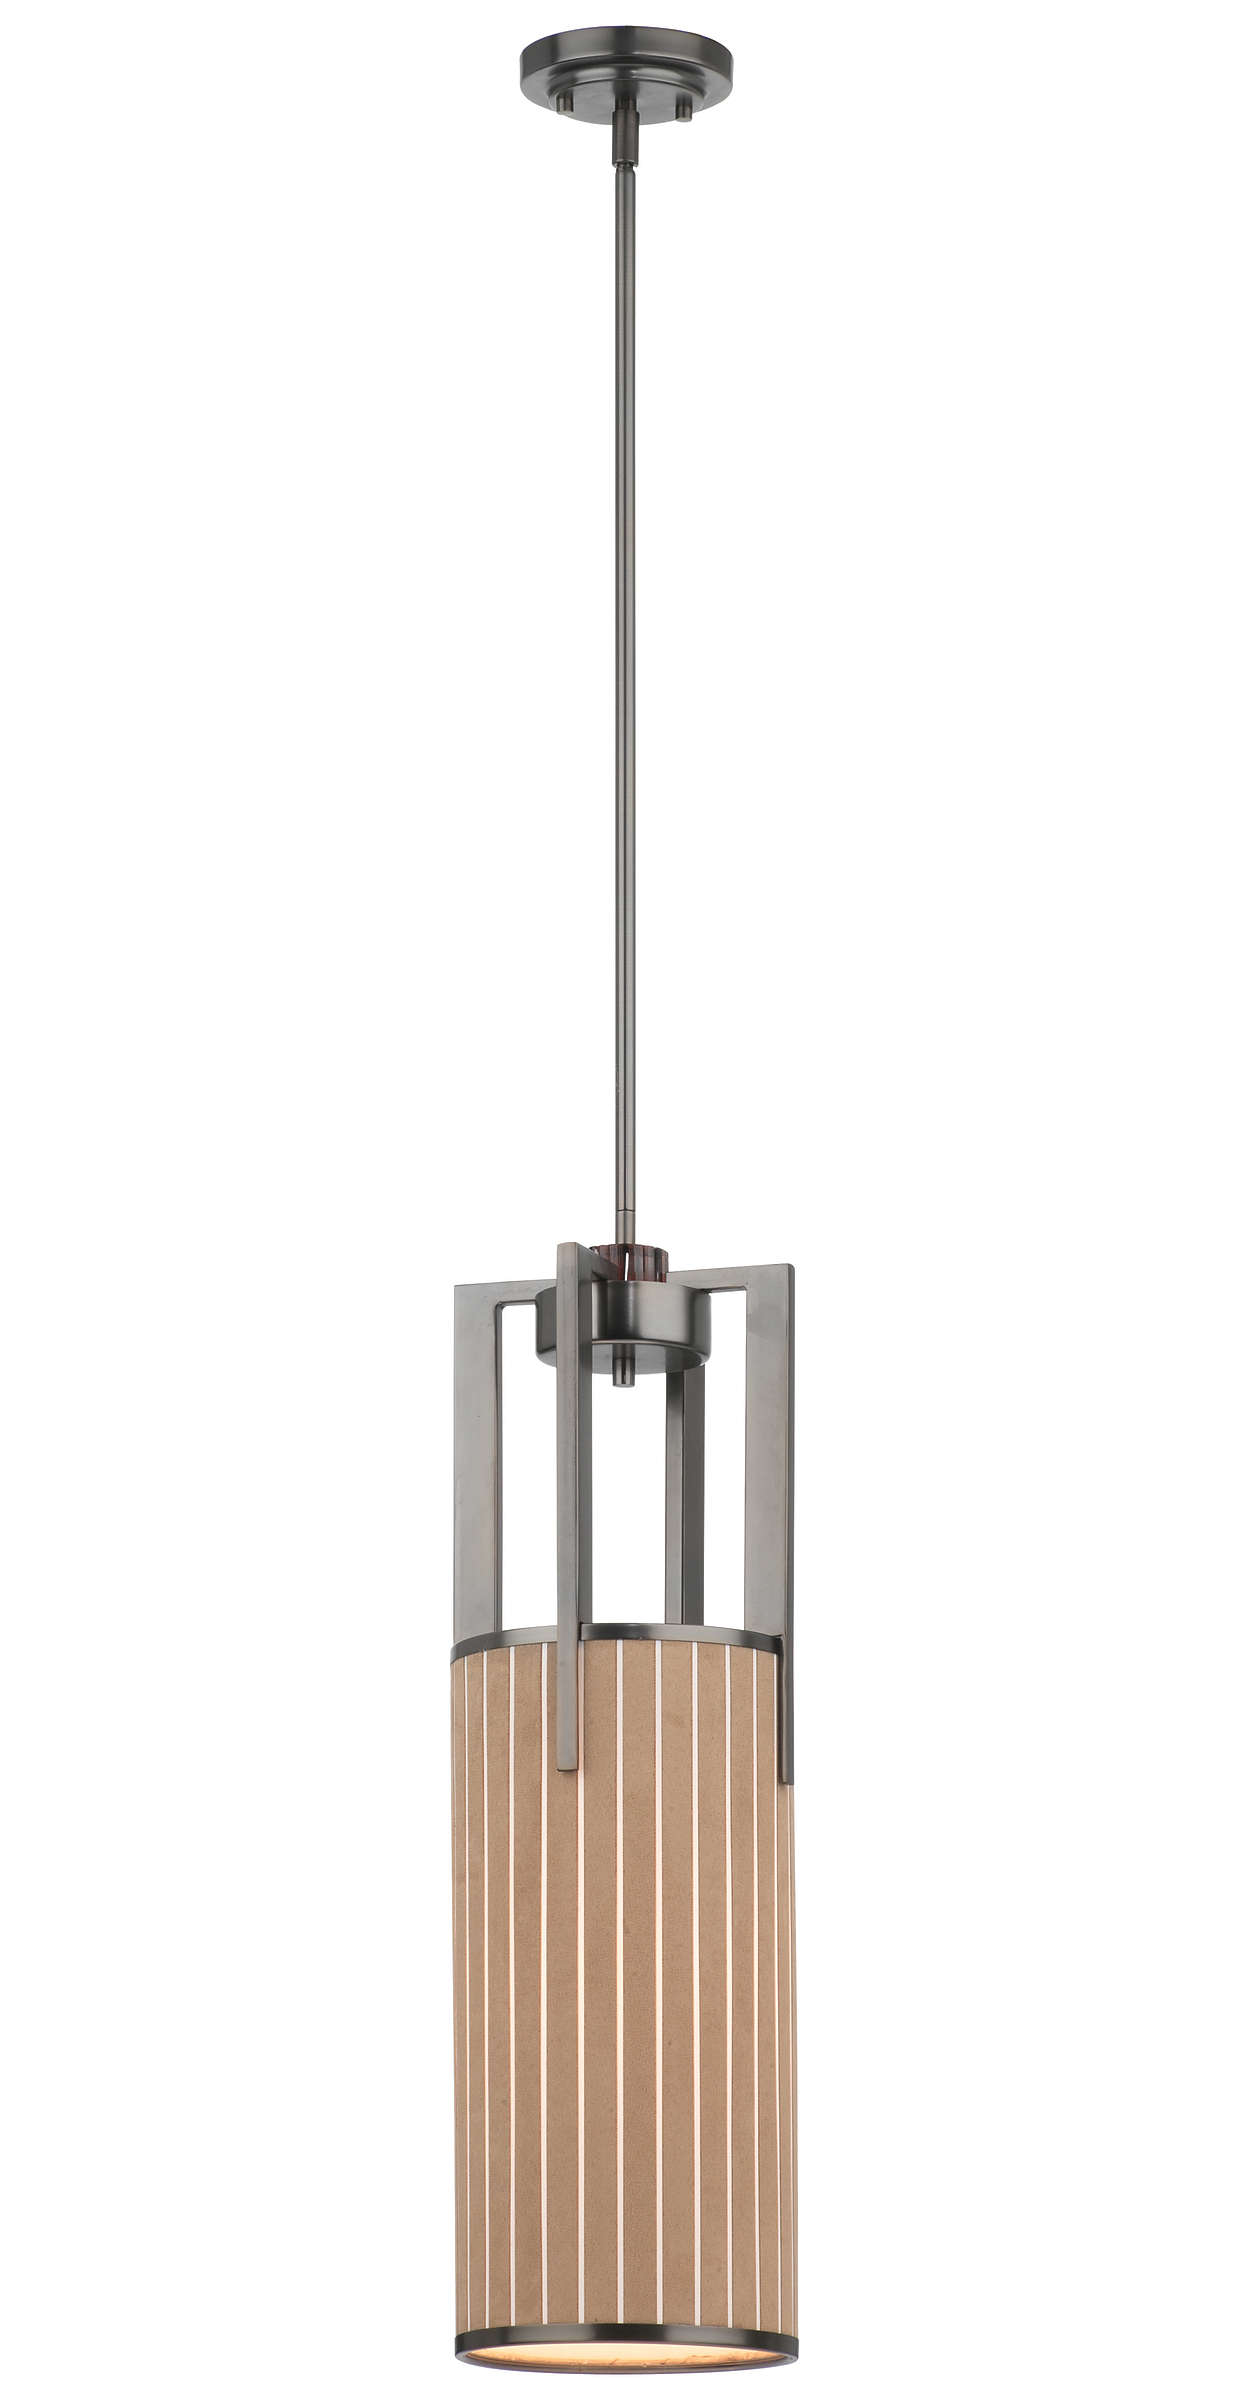 Haberdasher 1-light Pendant in Oiled Bronze finish